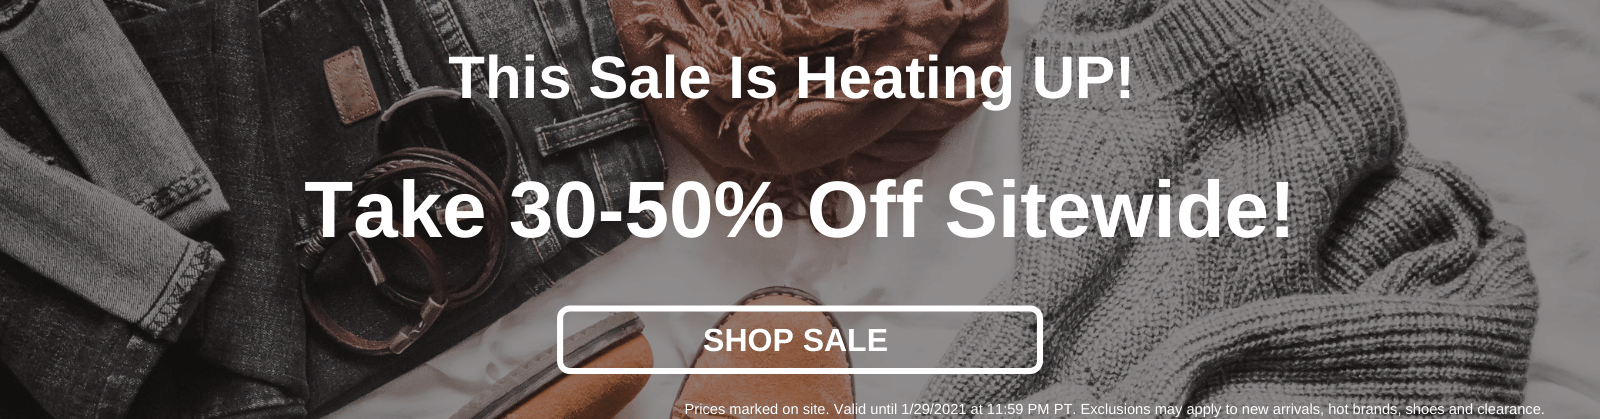 This Sale Is Heating UP! Take 30-50% Off Sitewide! [Shop Sale]